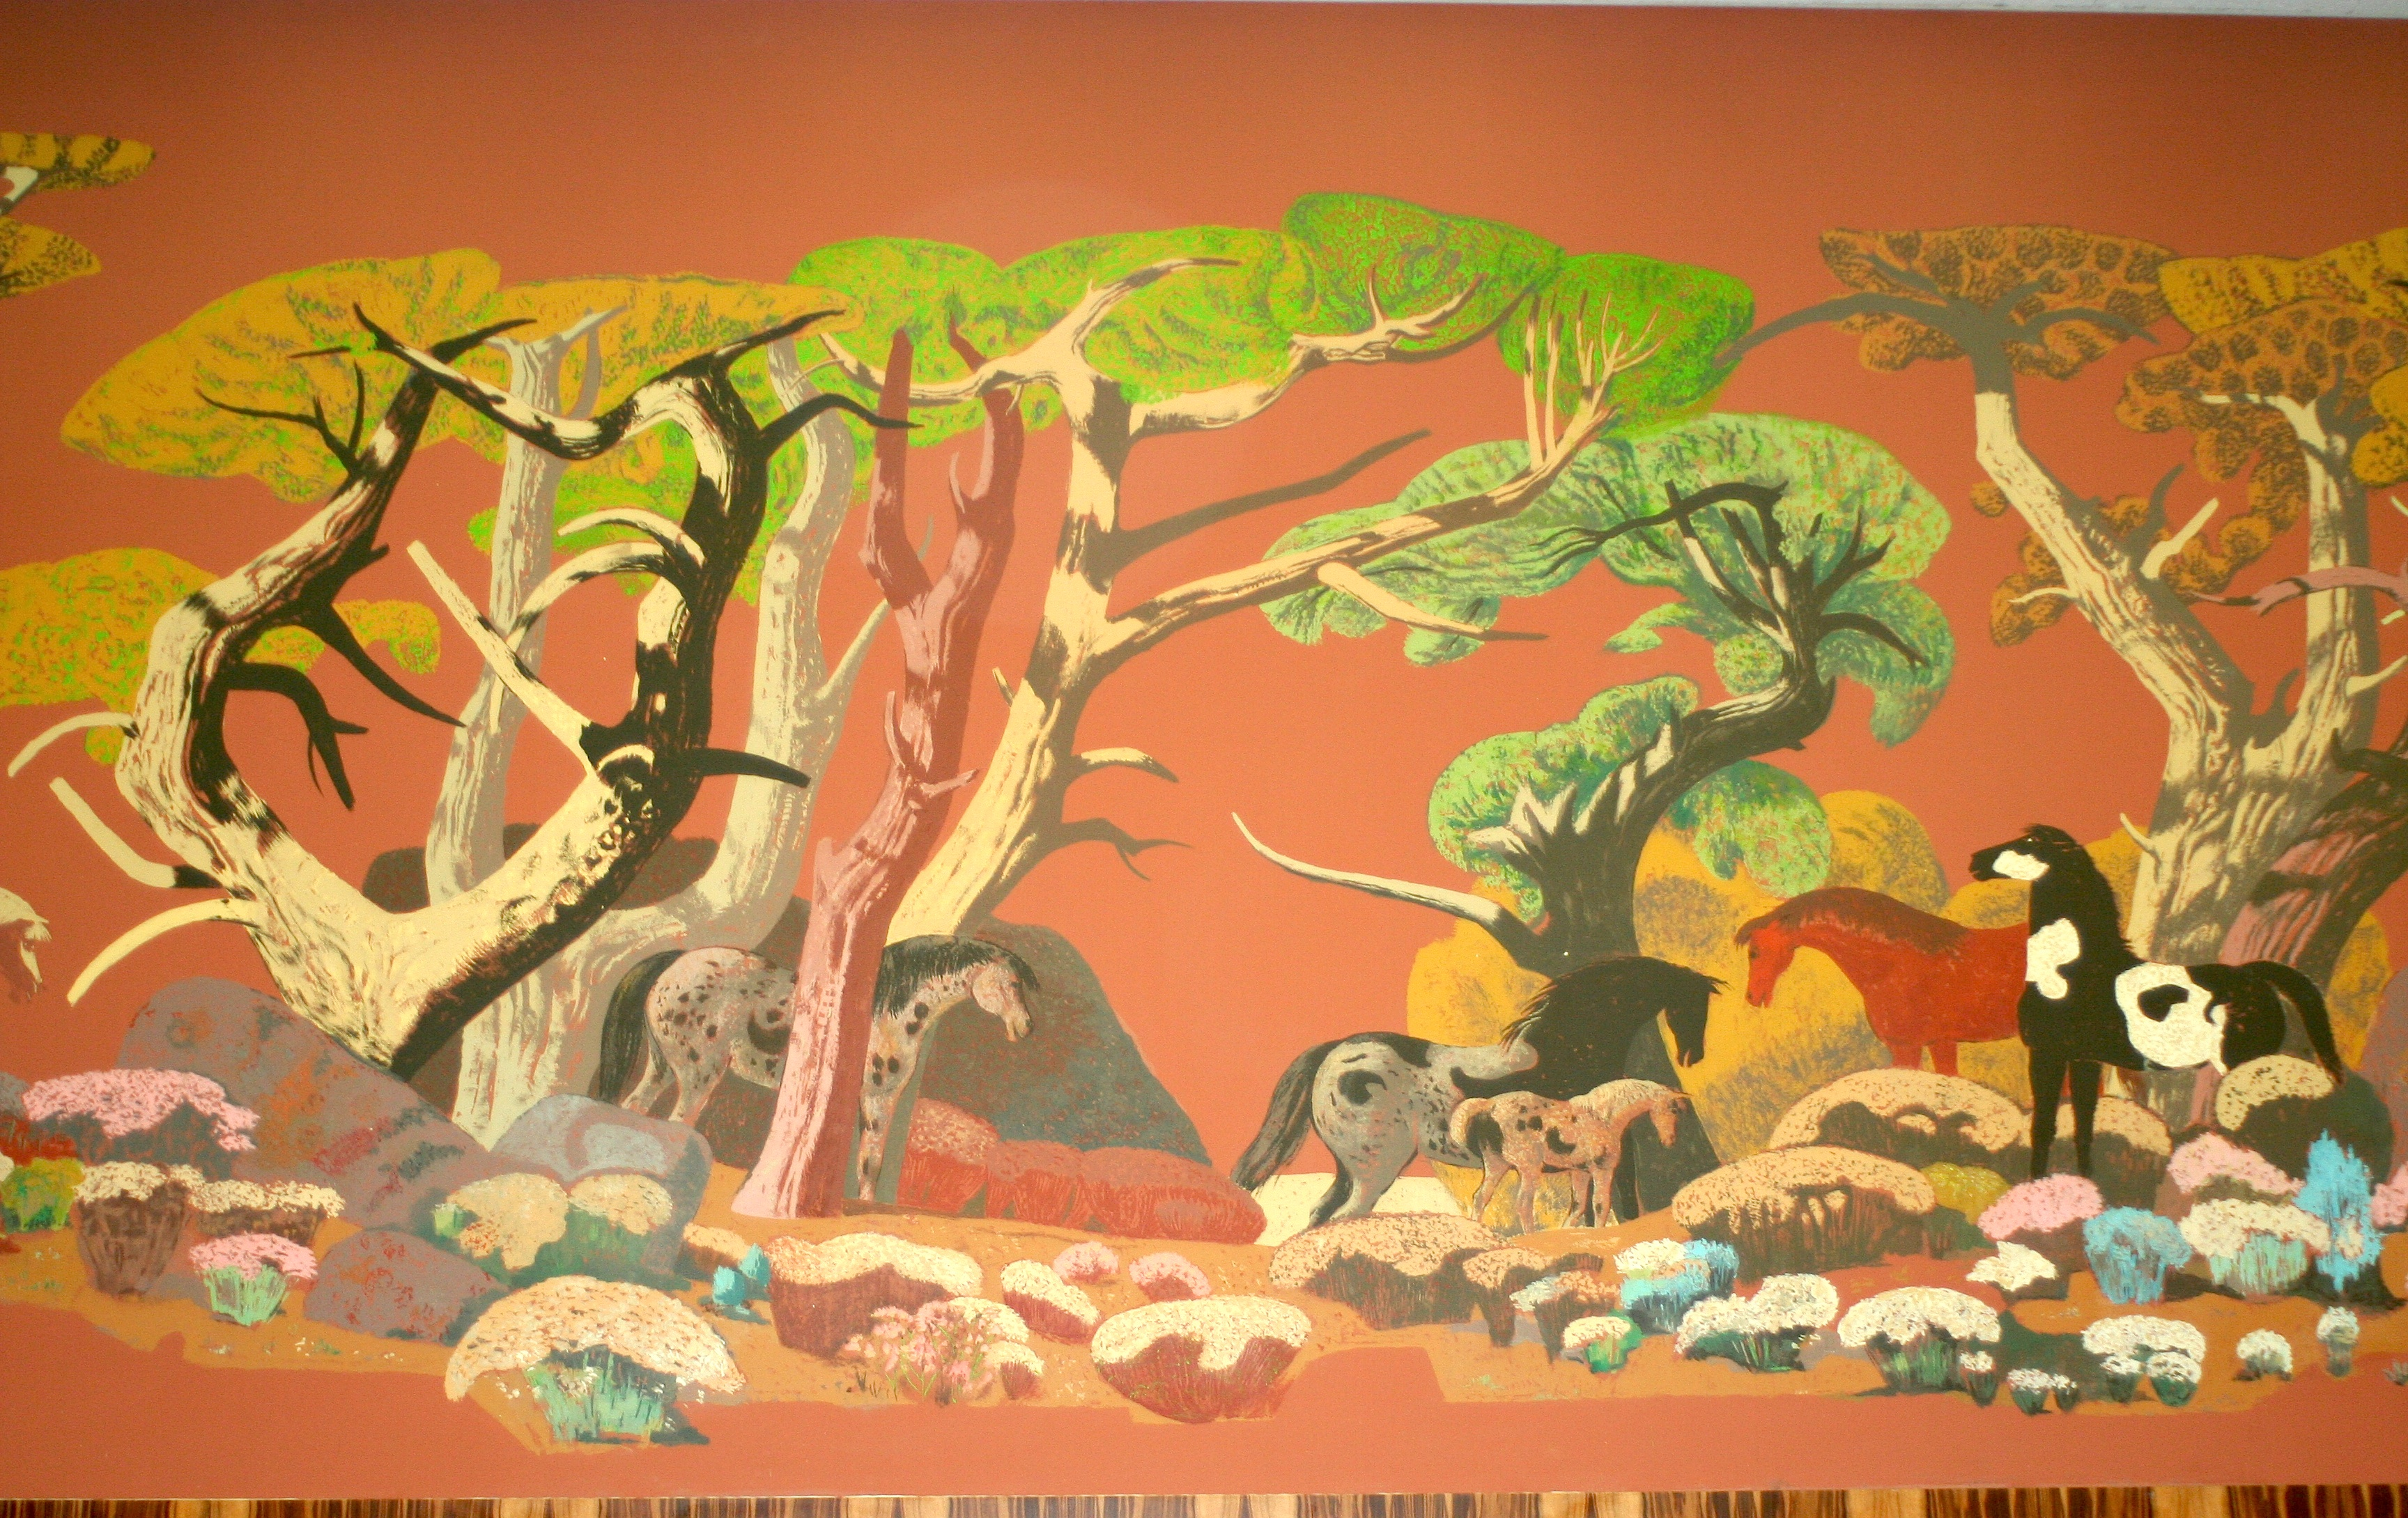 Mural painting, West Portal